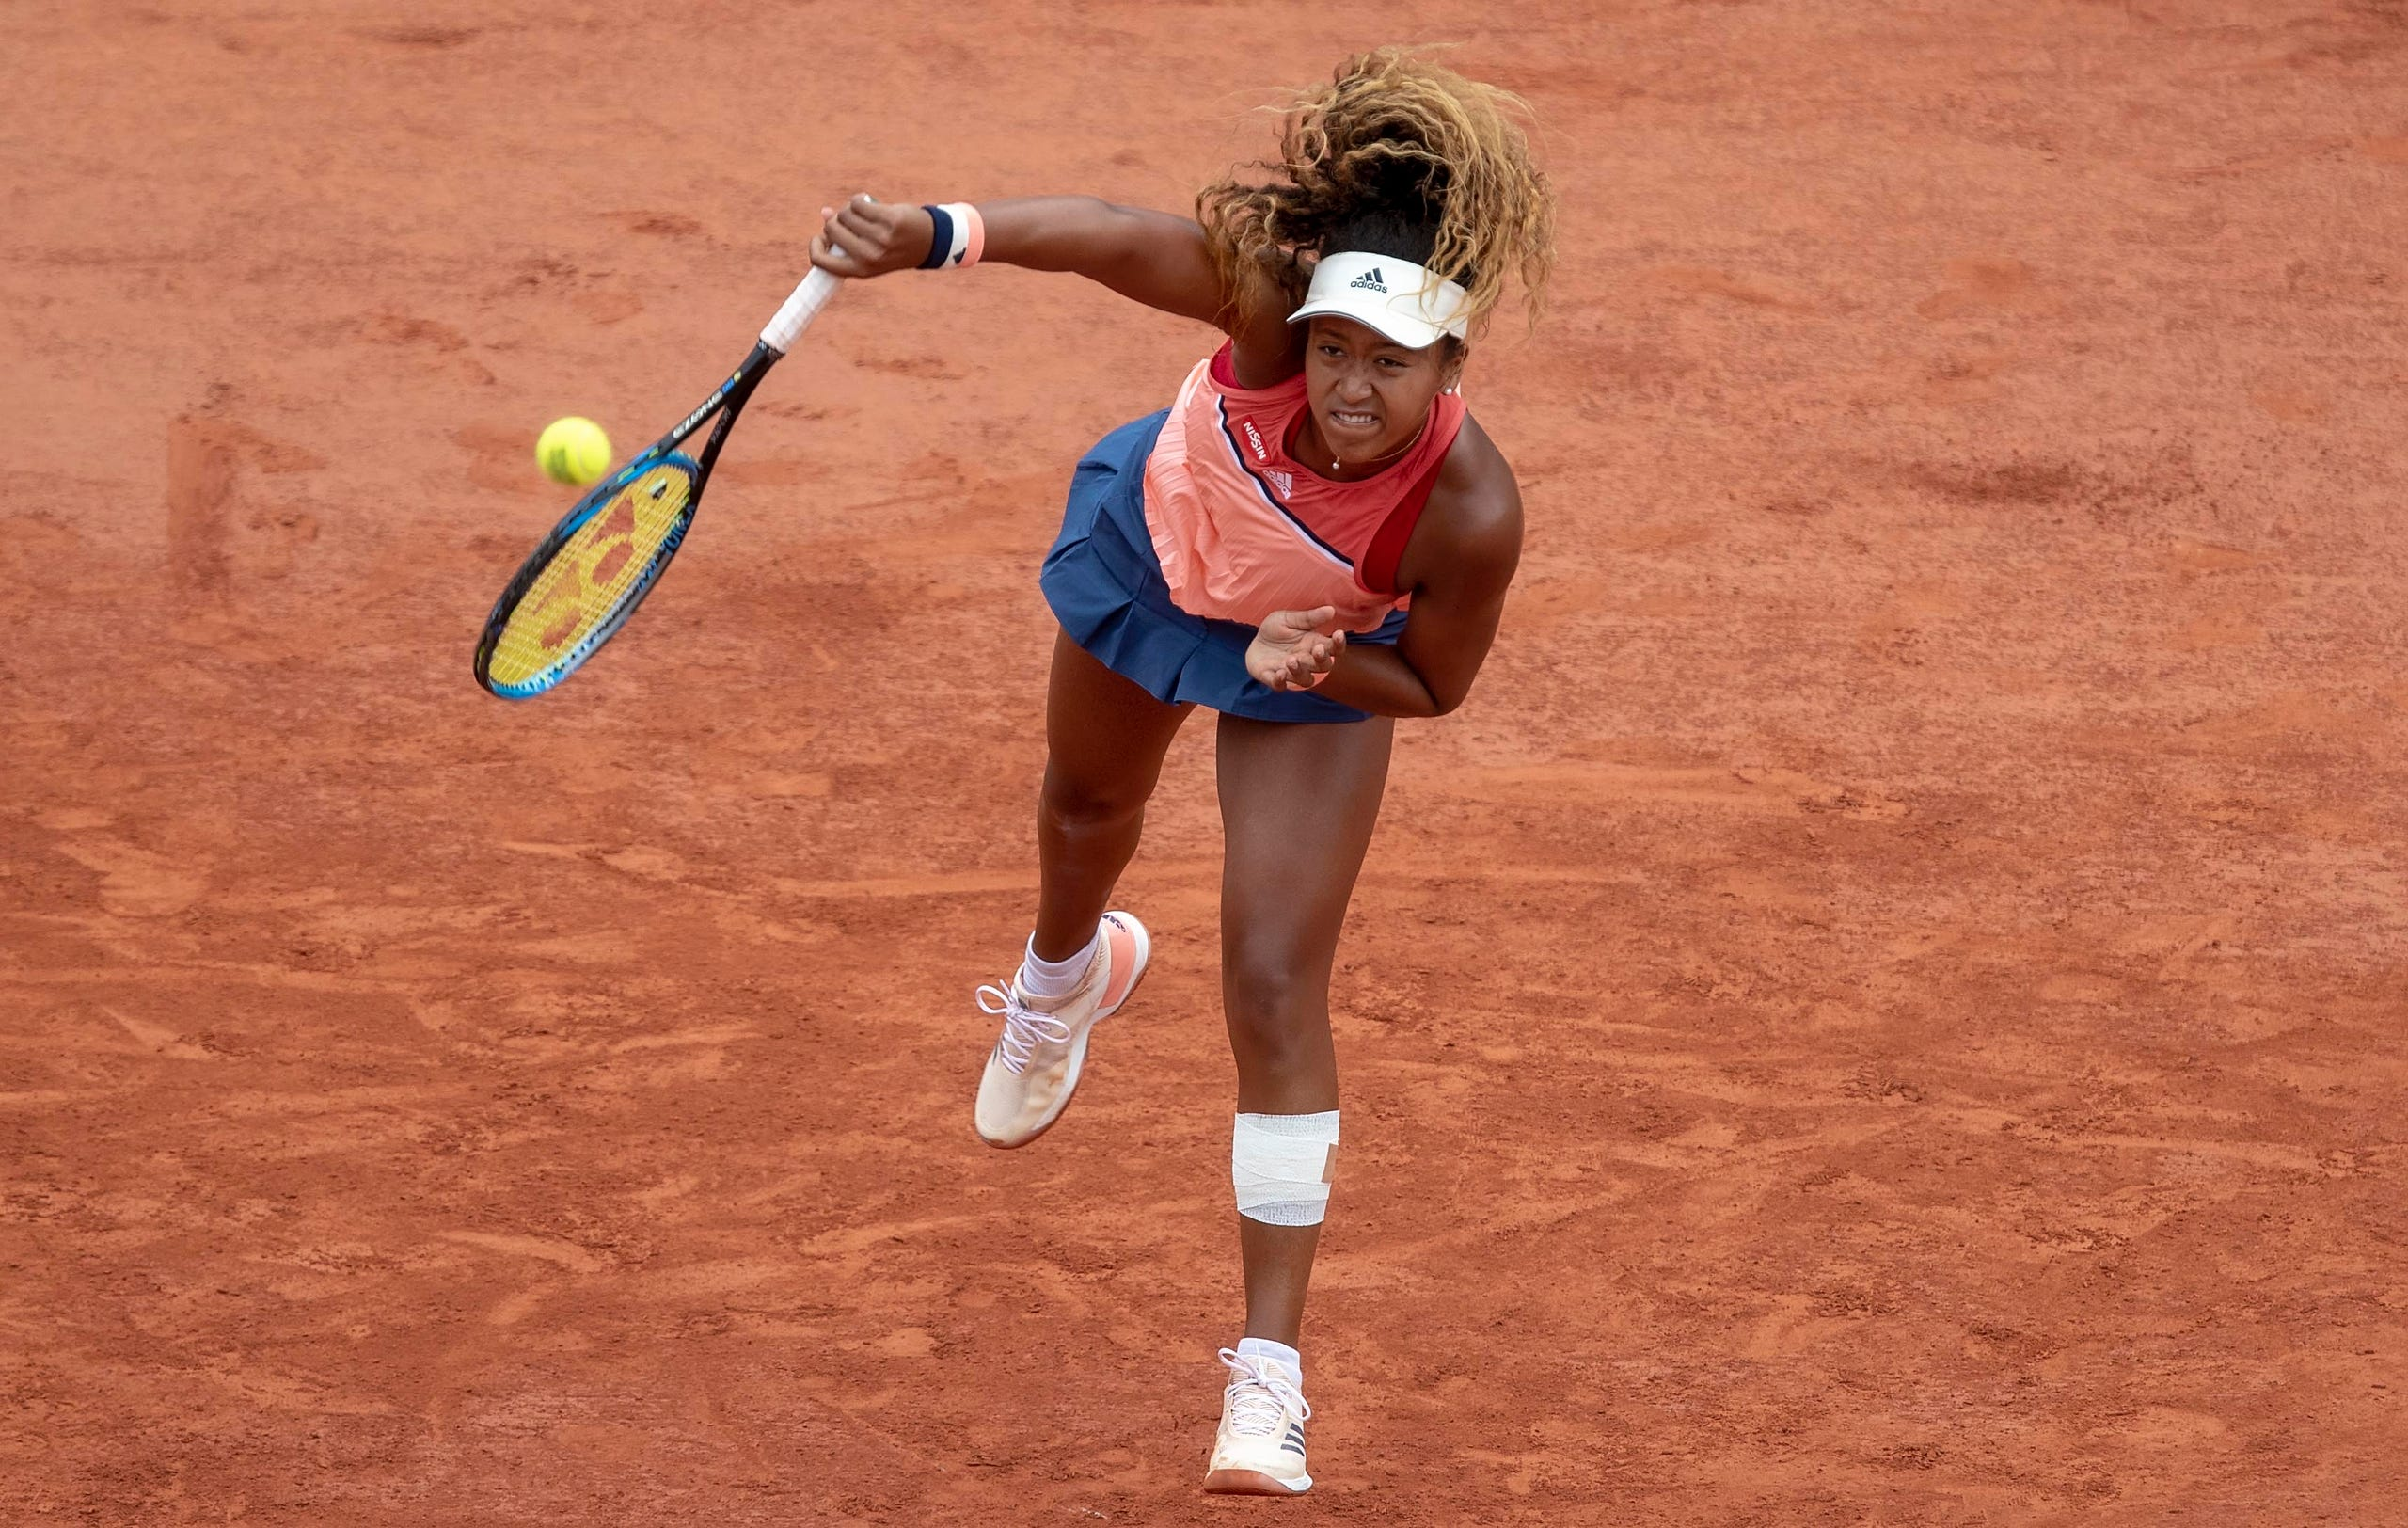 Naomi Osaka in action during her match against Madison Keys (USA) on day six of the 2018 French Open at Roland Garros on June 1, 2018 in Paris.